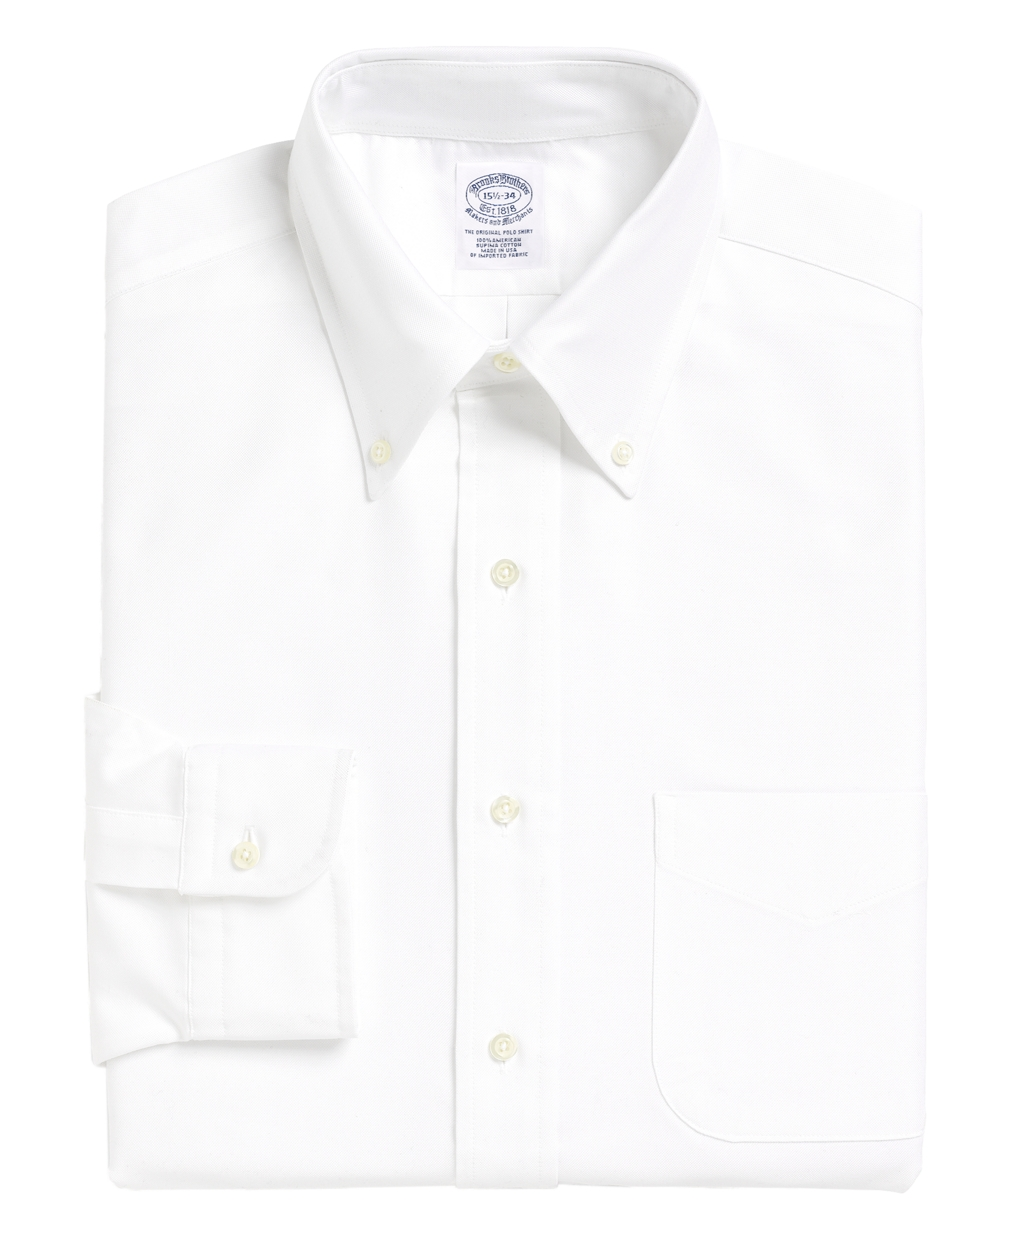 Lyst brooks brothers traditional fit button down collar for Brooks brothers dress shirt fit